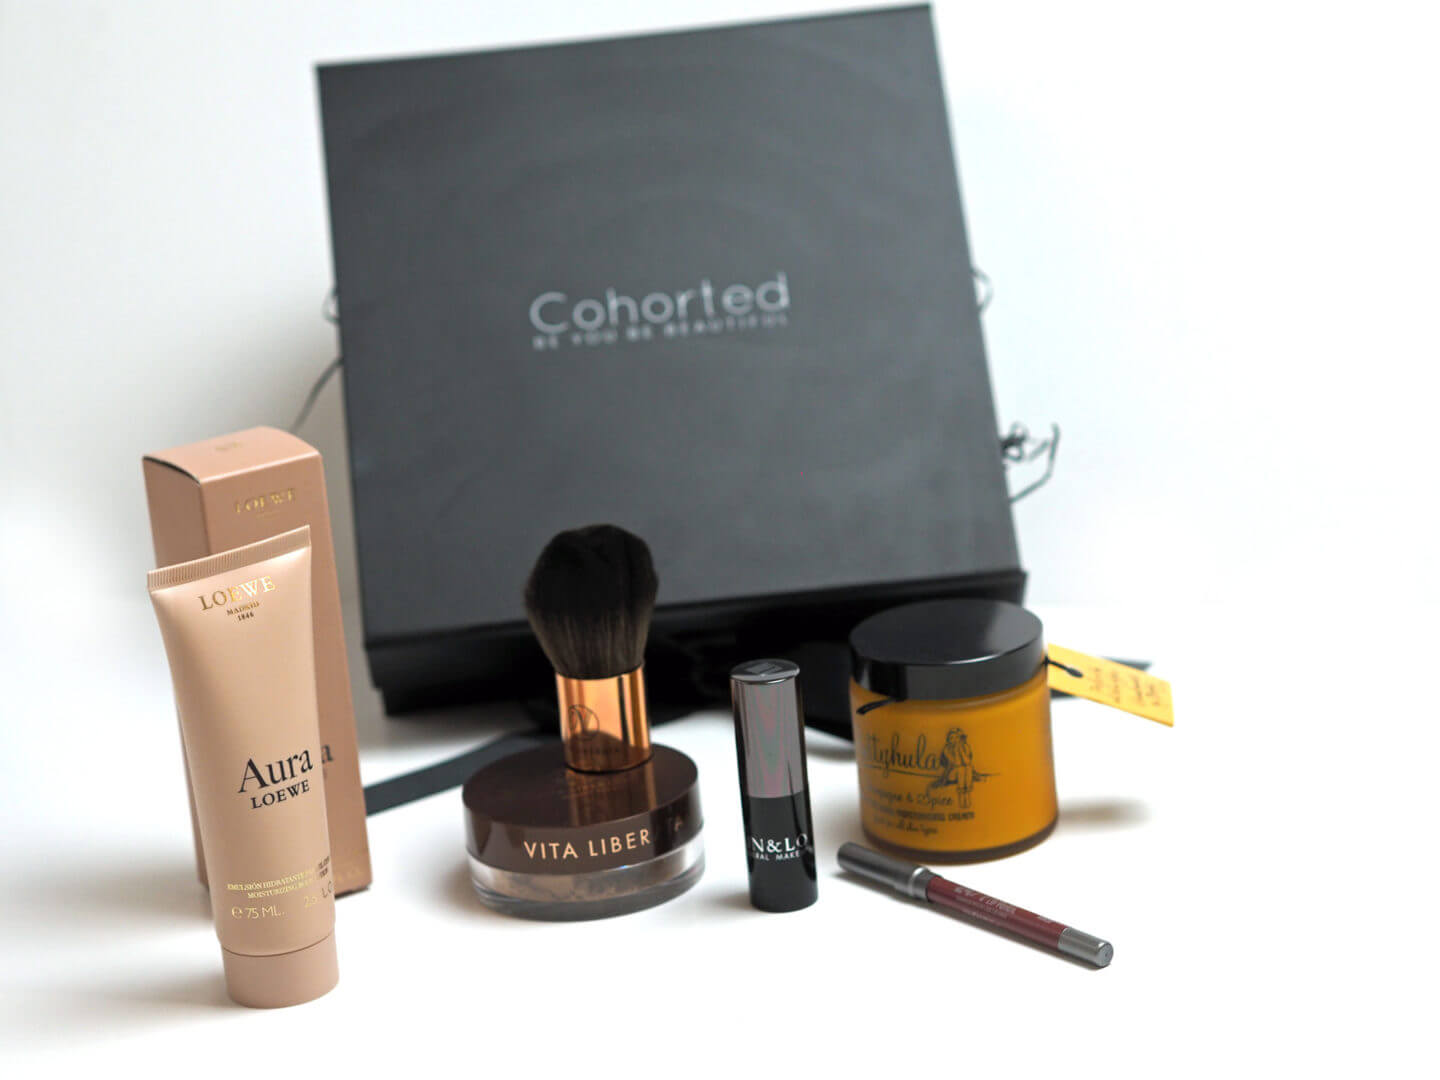 Cohorted Beauty Box May 2017